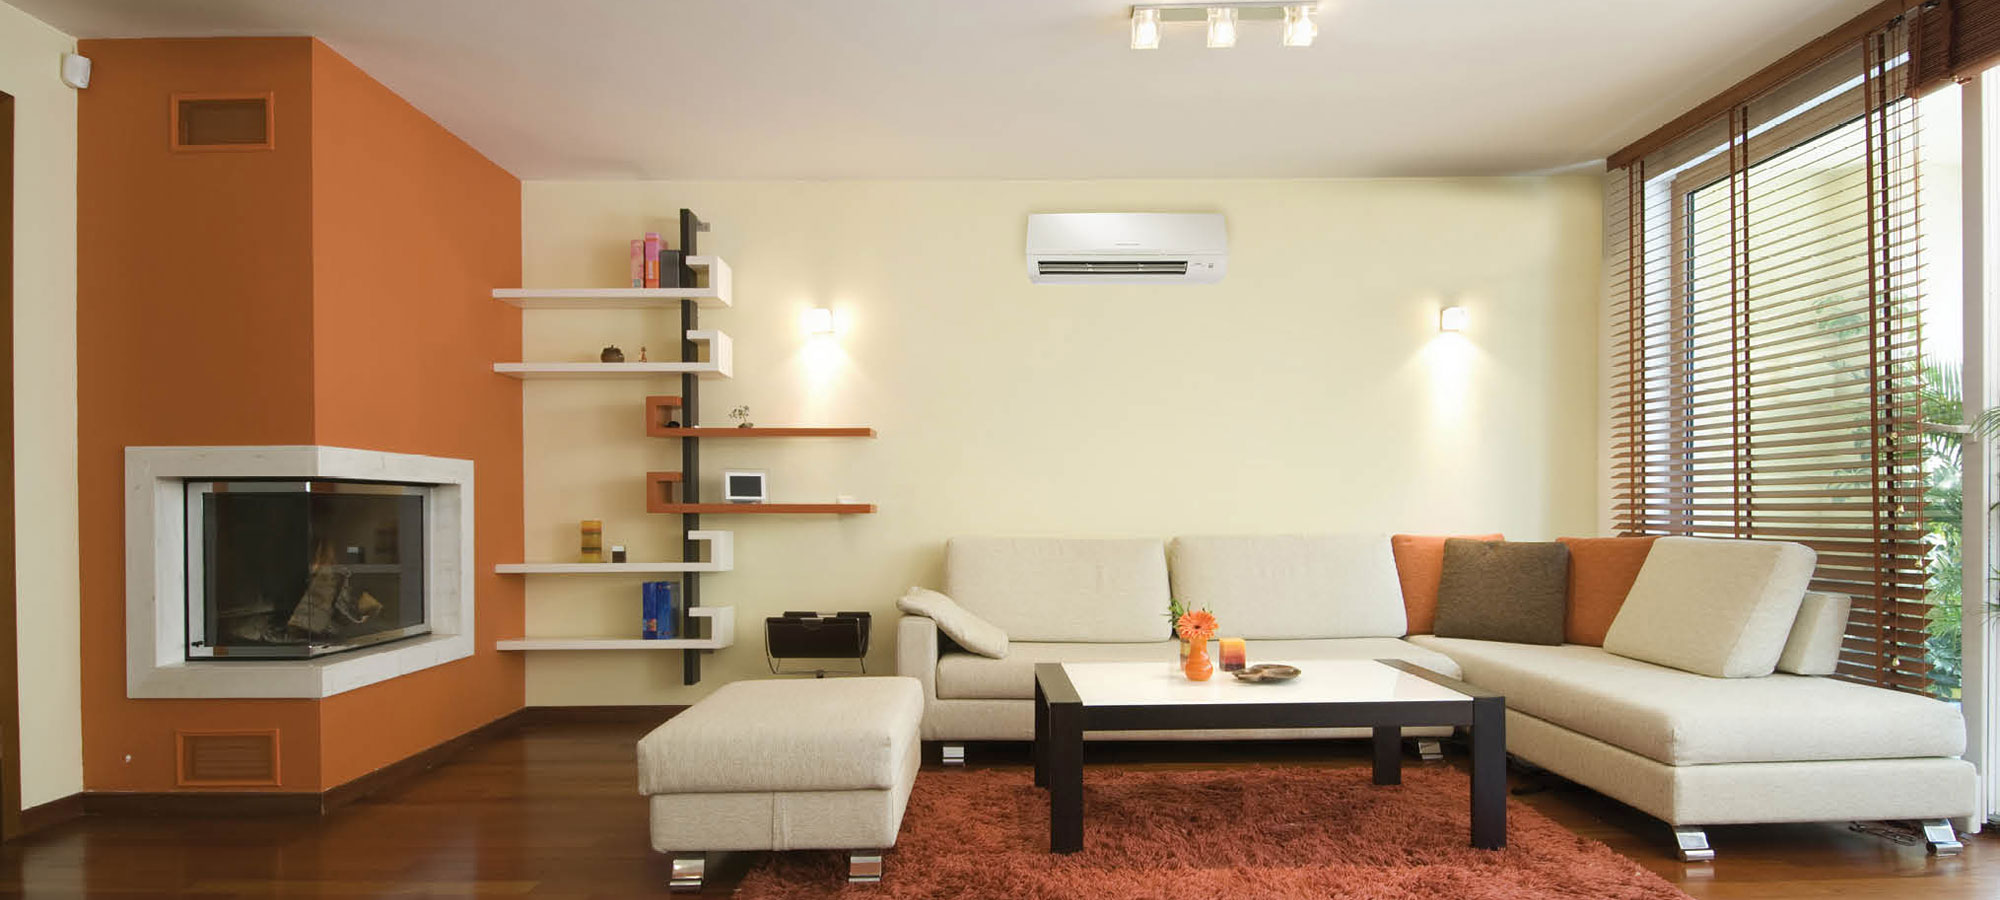 Ductless units can control a room's comfort any time of year.